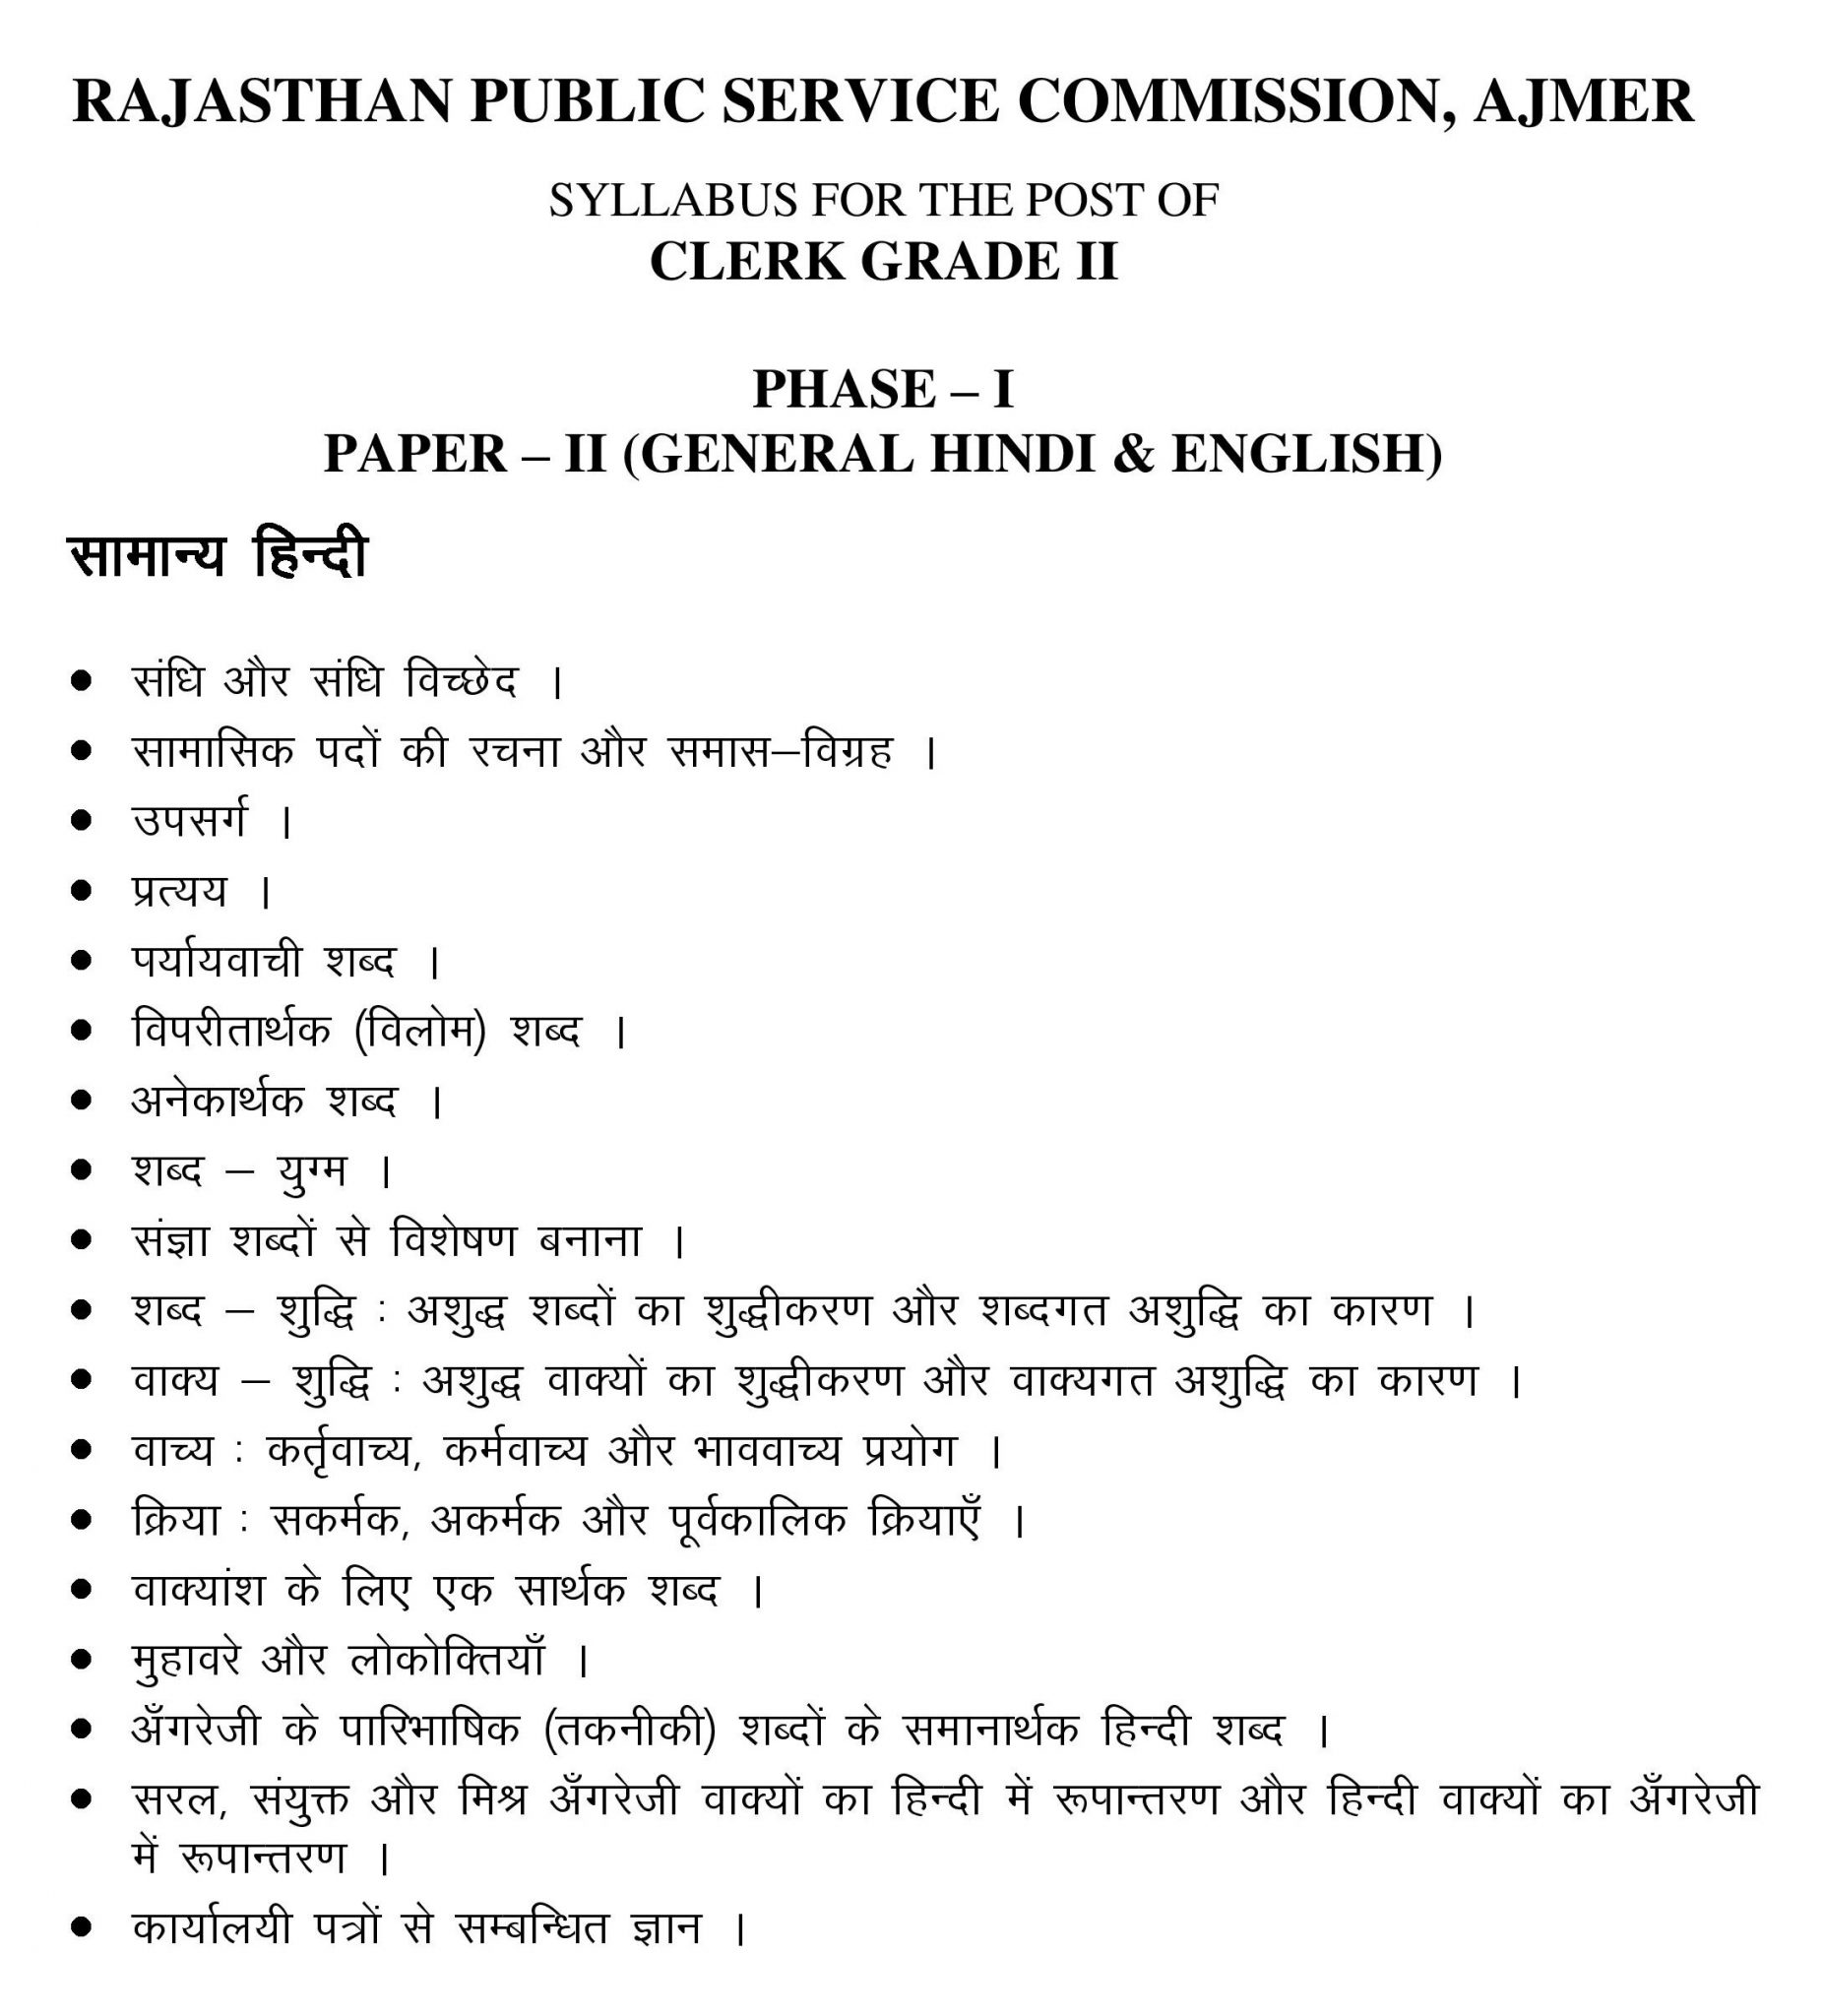 rpsc ldc syllabus 2018 pdf in hindi नय स ल बस exam pattern